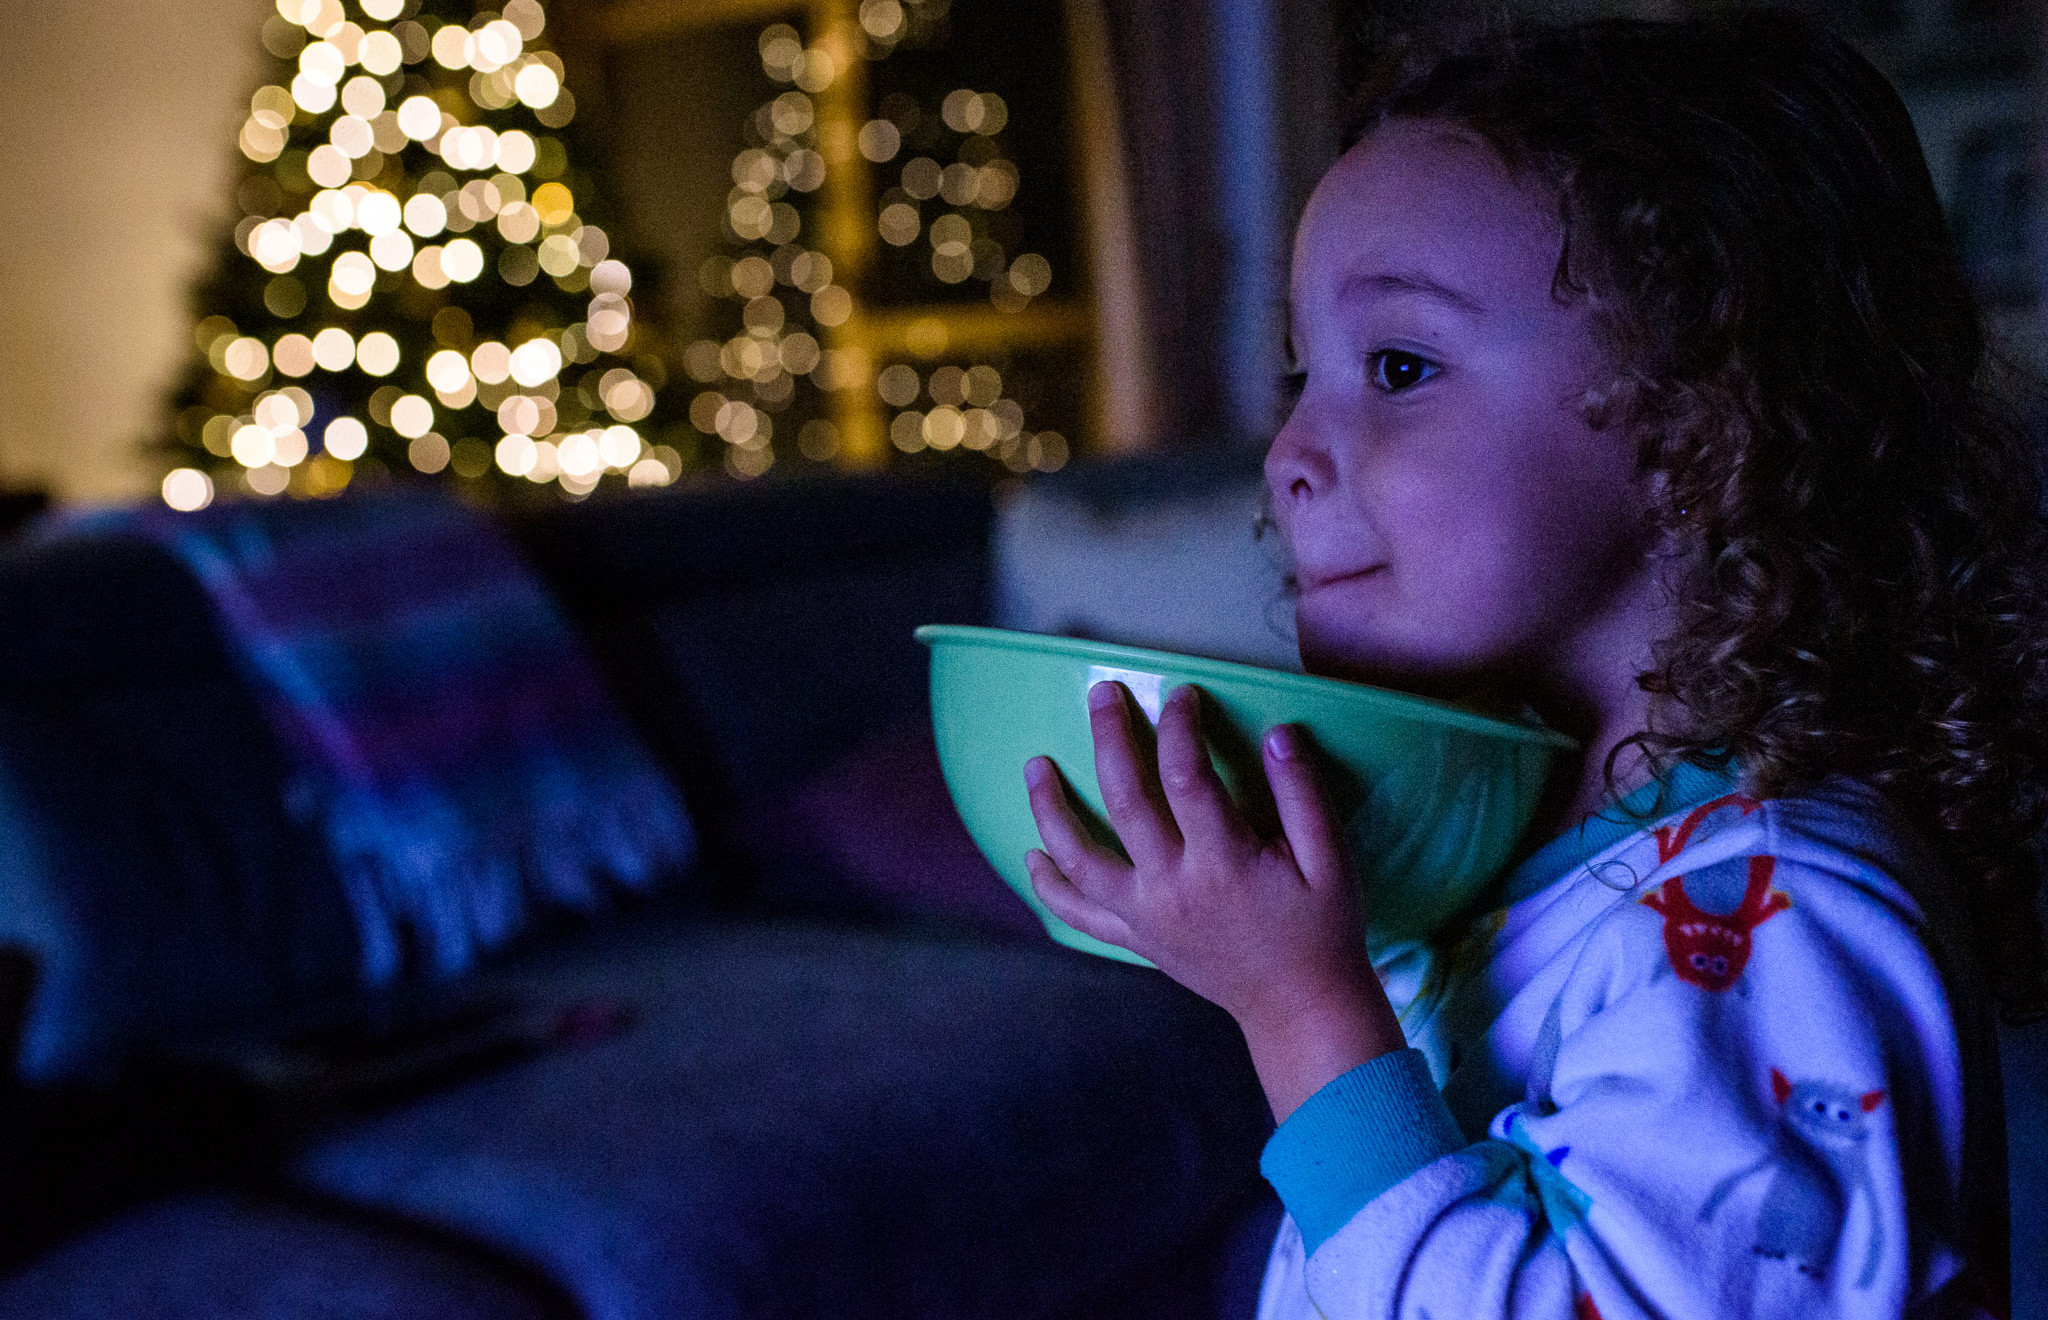 girl eats popcorn in front of the Christmas tree